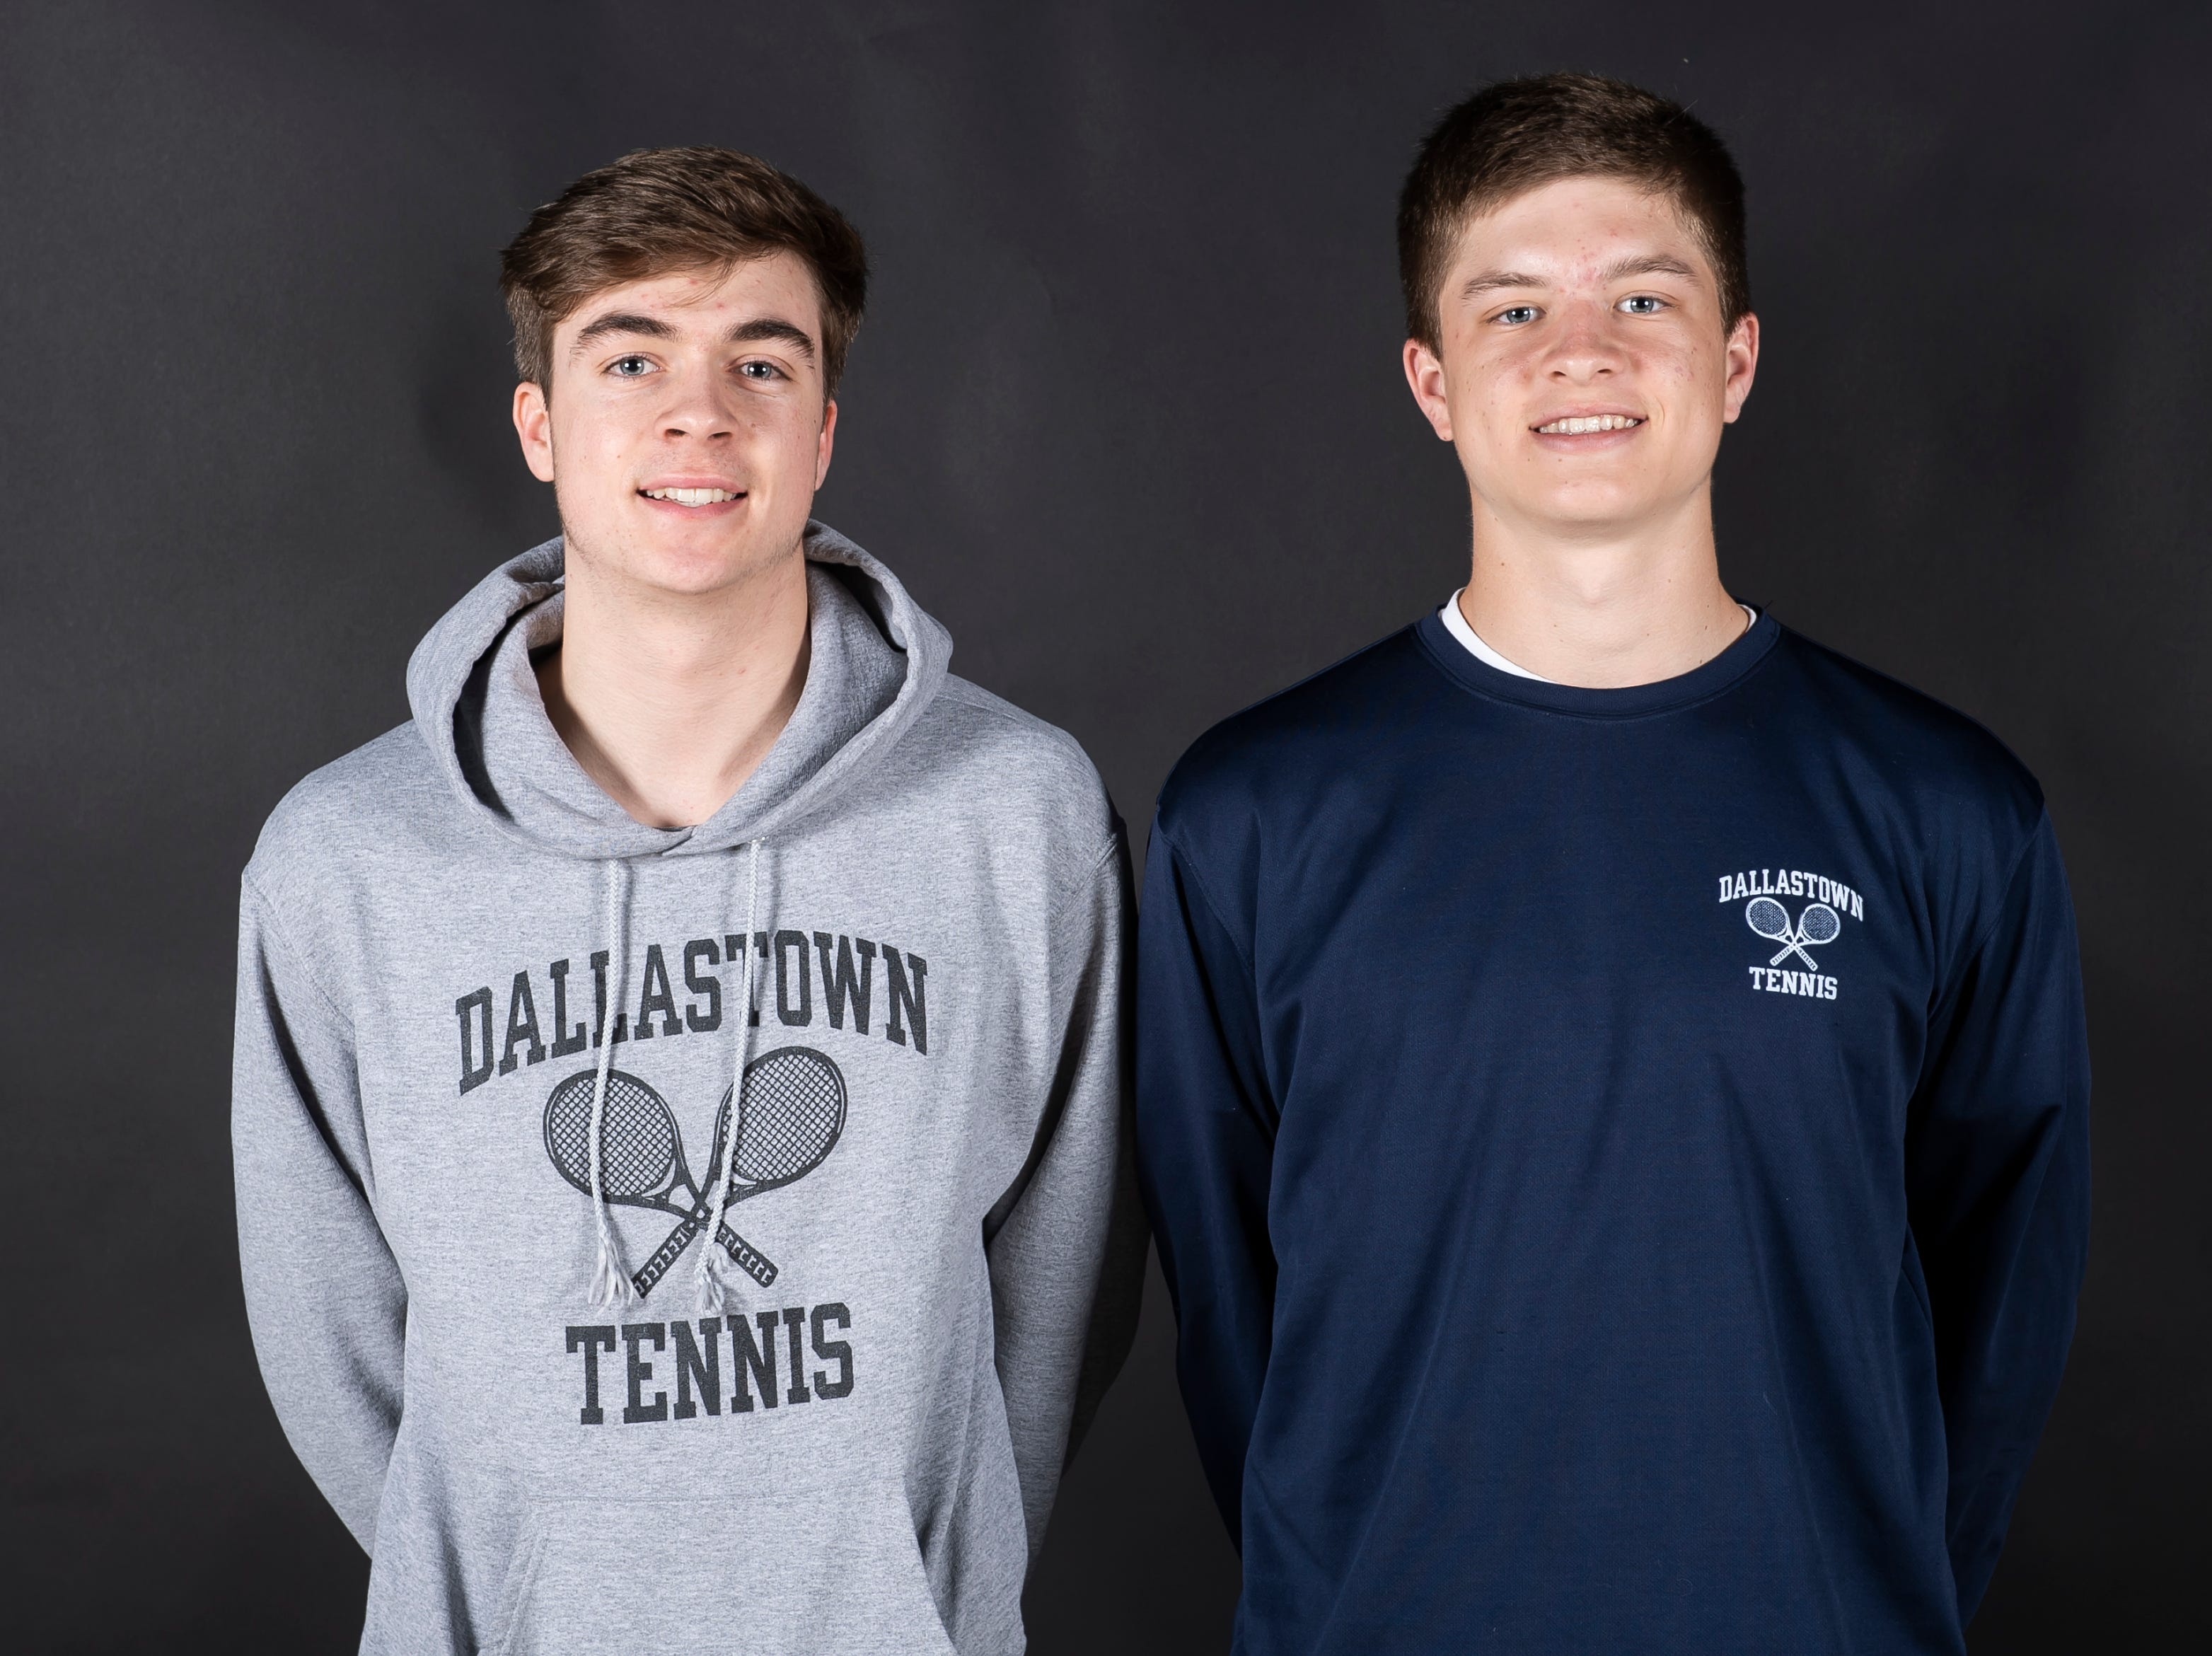 (From left) Dallastown tennis players Sebastian May and Holden Koons pose in the GameTimePA photo booth during spring sports media day in York Sunday, March 10, 2019.